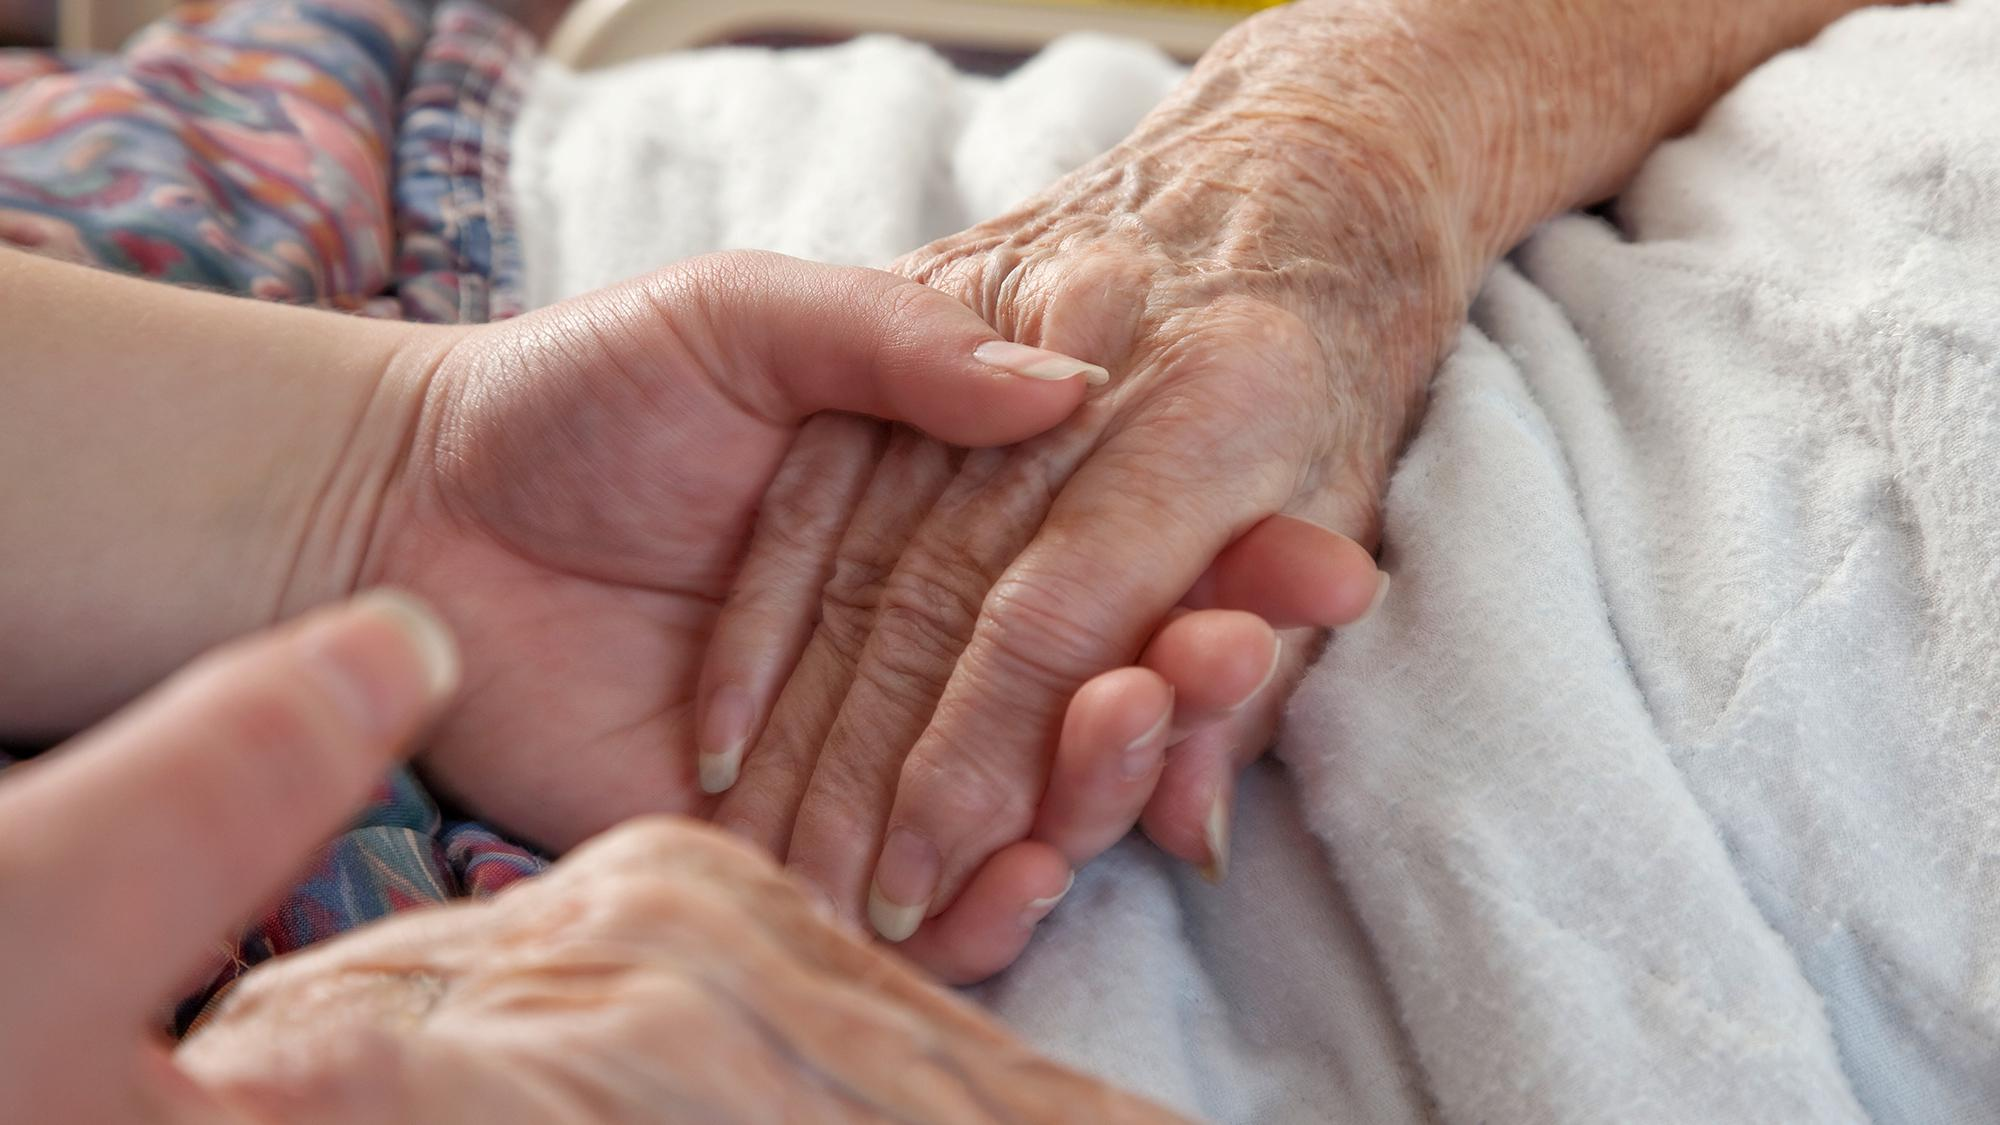 Hospice Chaplain Reflects On Life, Death And The 'Strength Of The